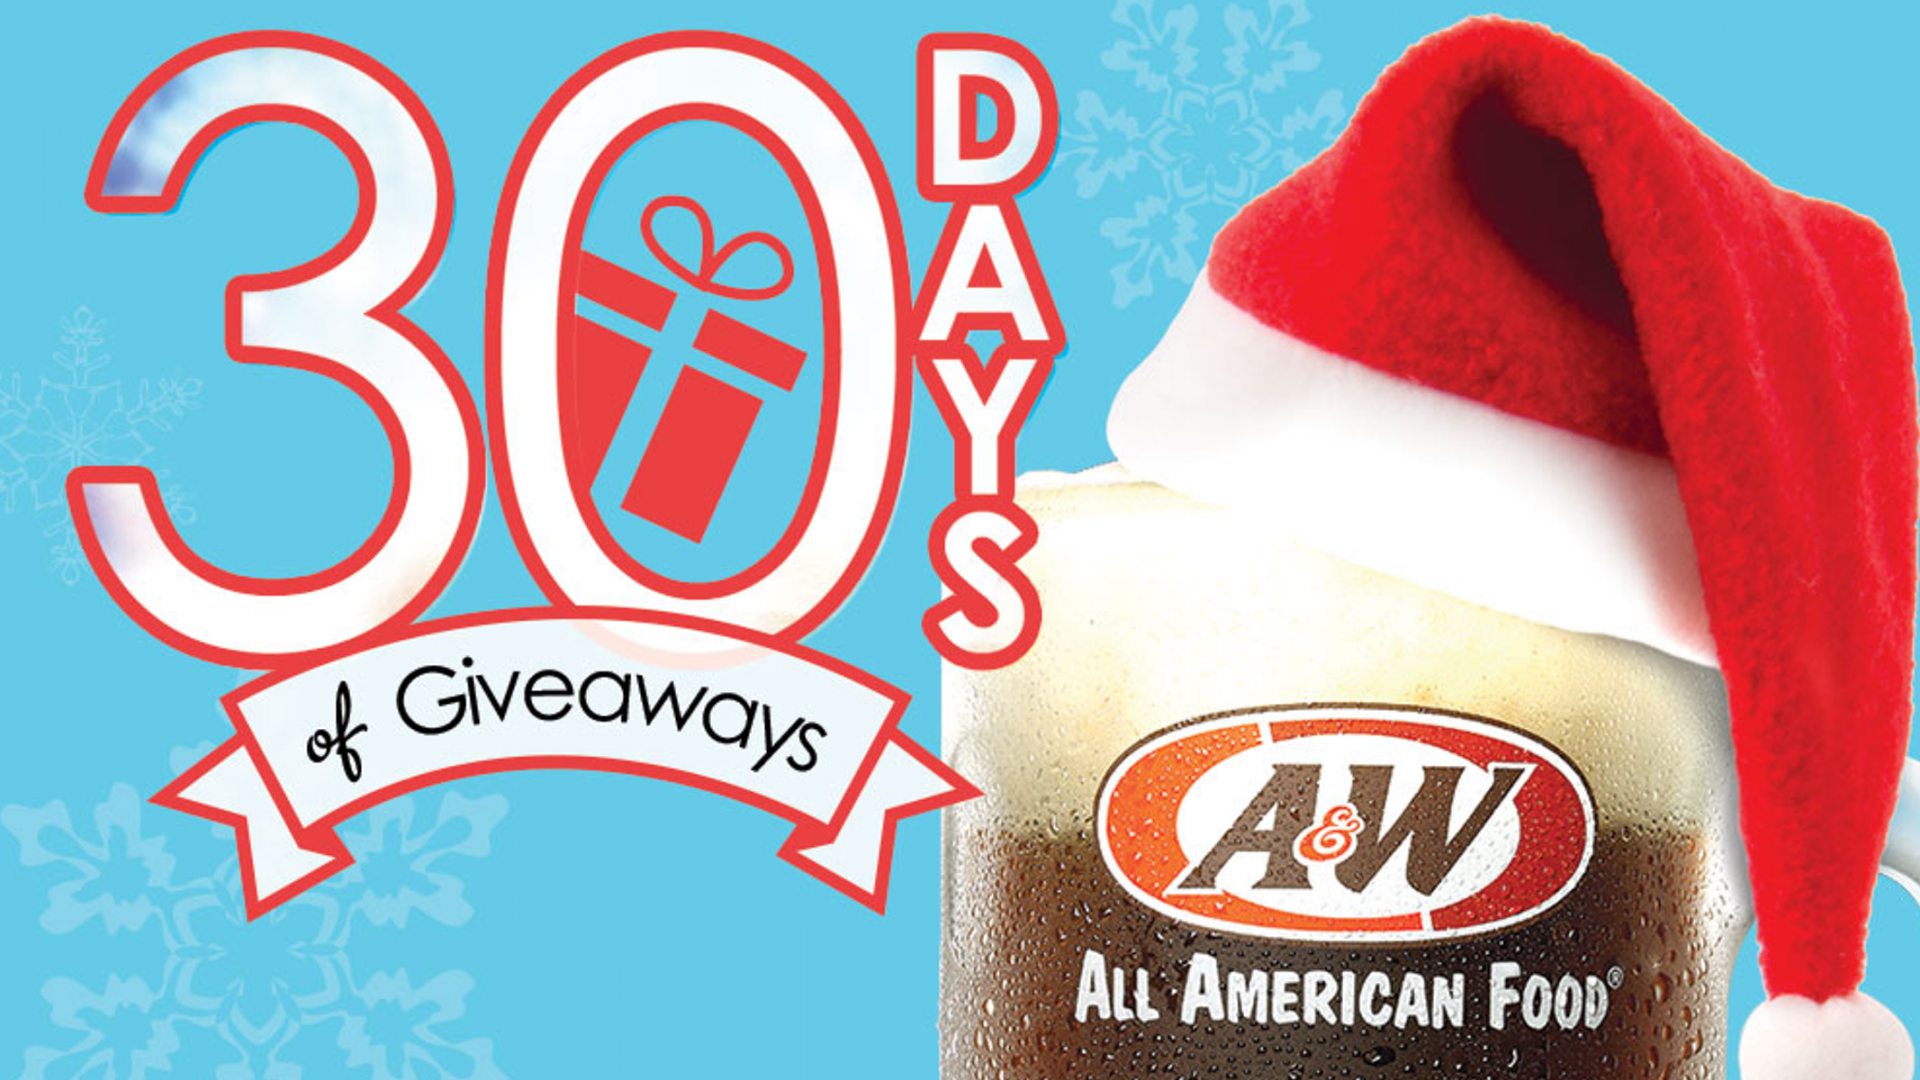 30 Days of Giveaways Root Beer Mug in Santa Hat